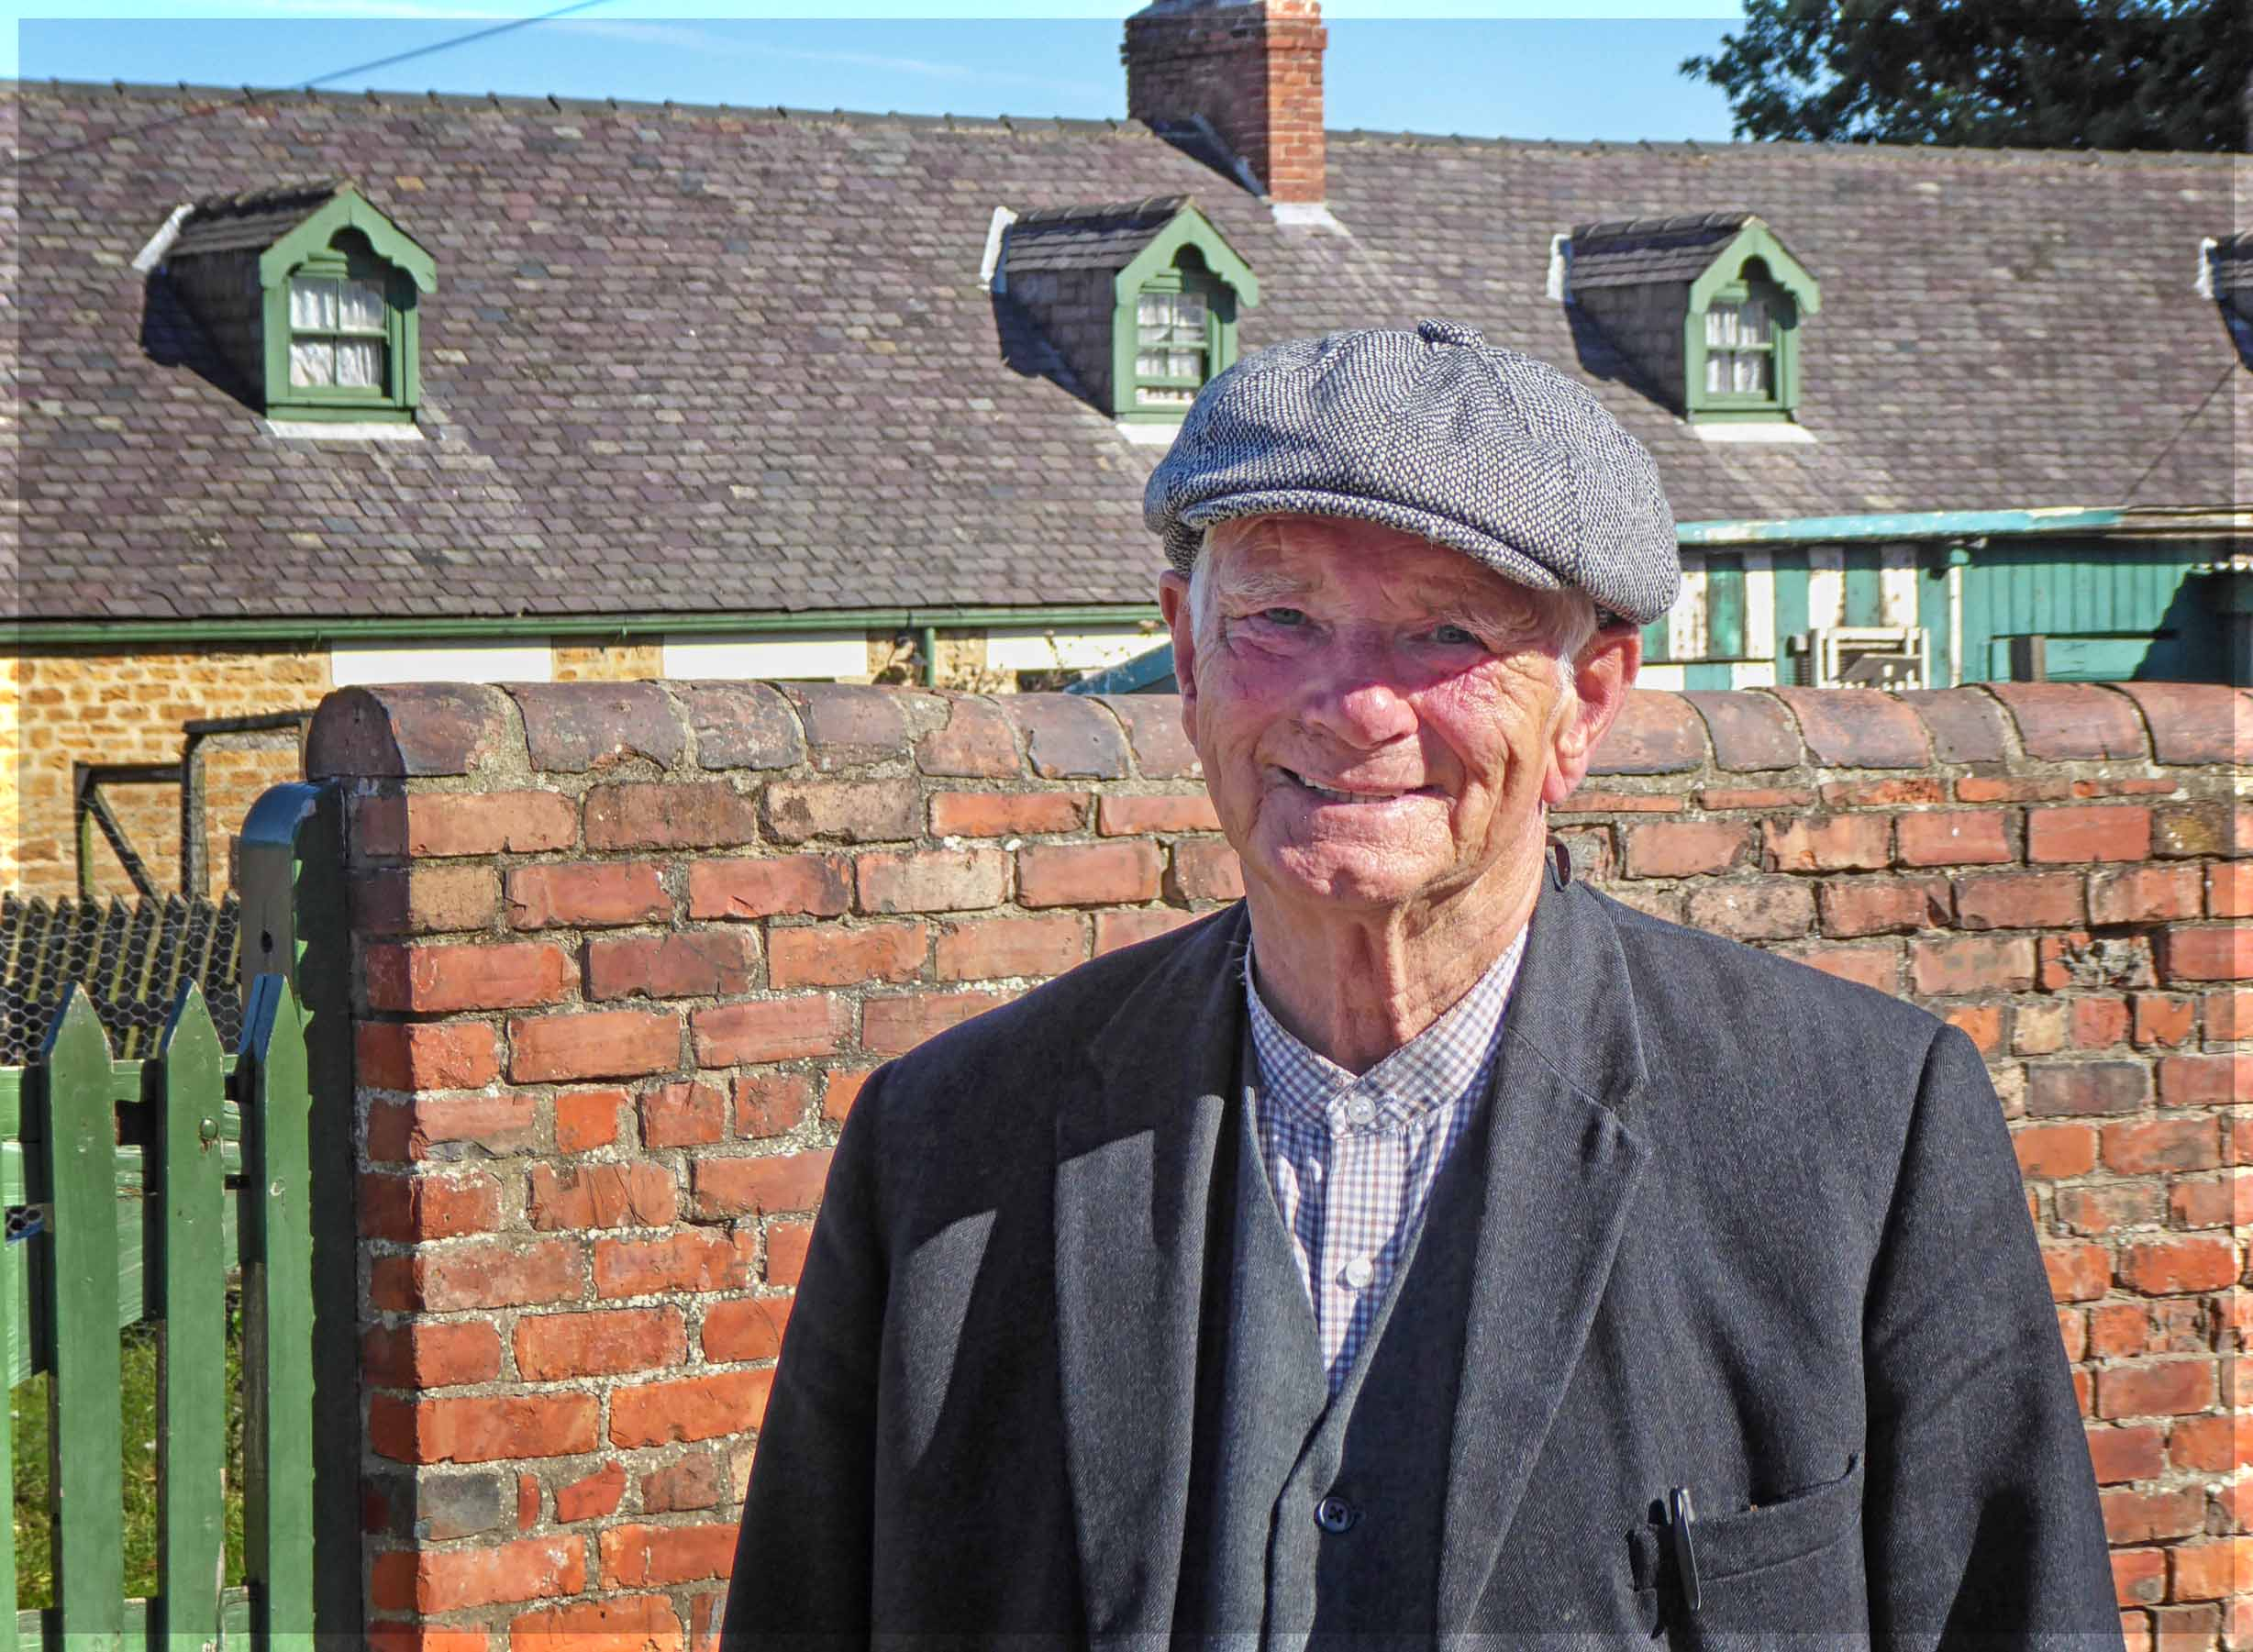 Man in cloth cap in front of row of cottages